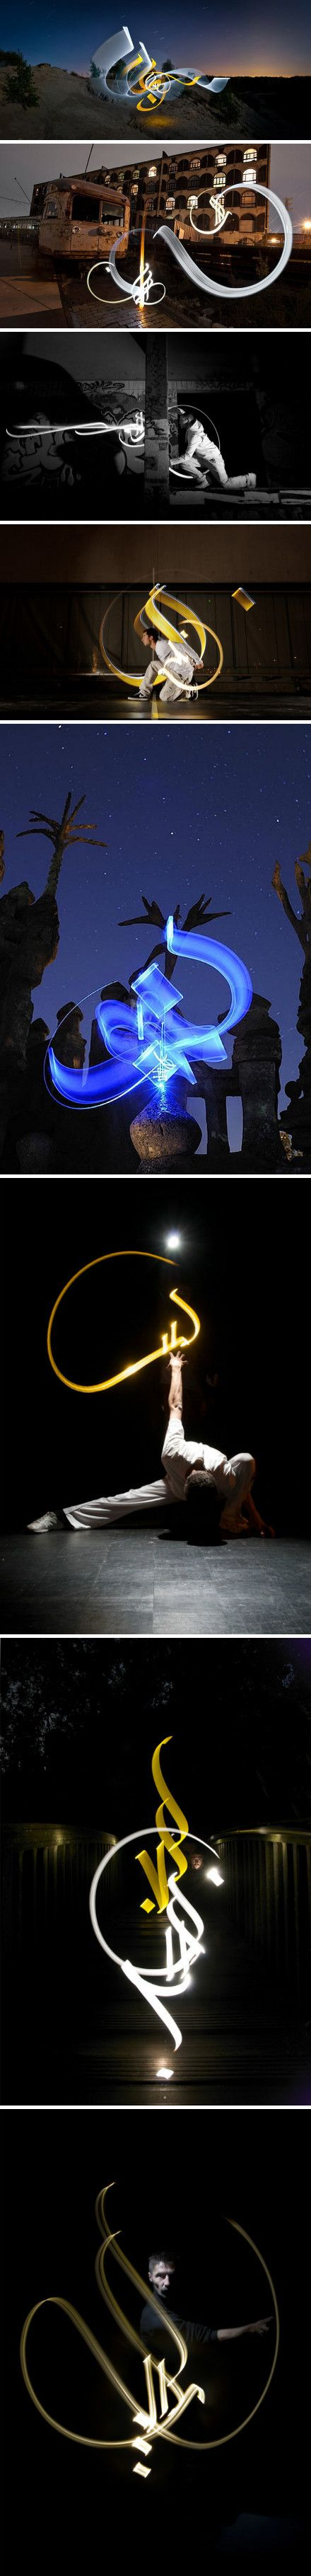 arabic calligraphy using light painting